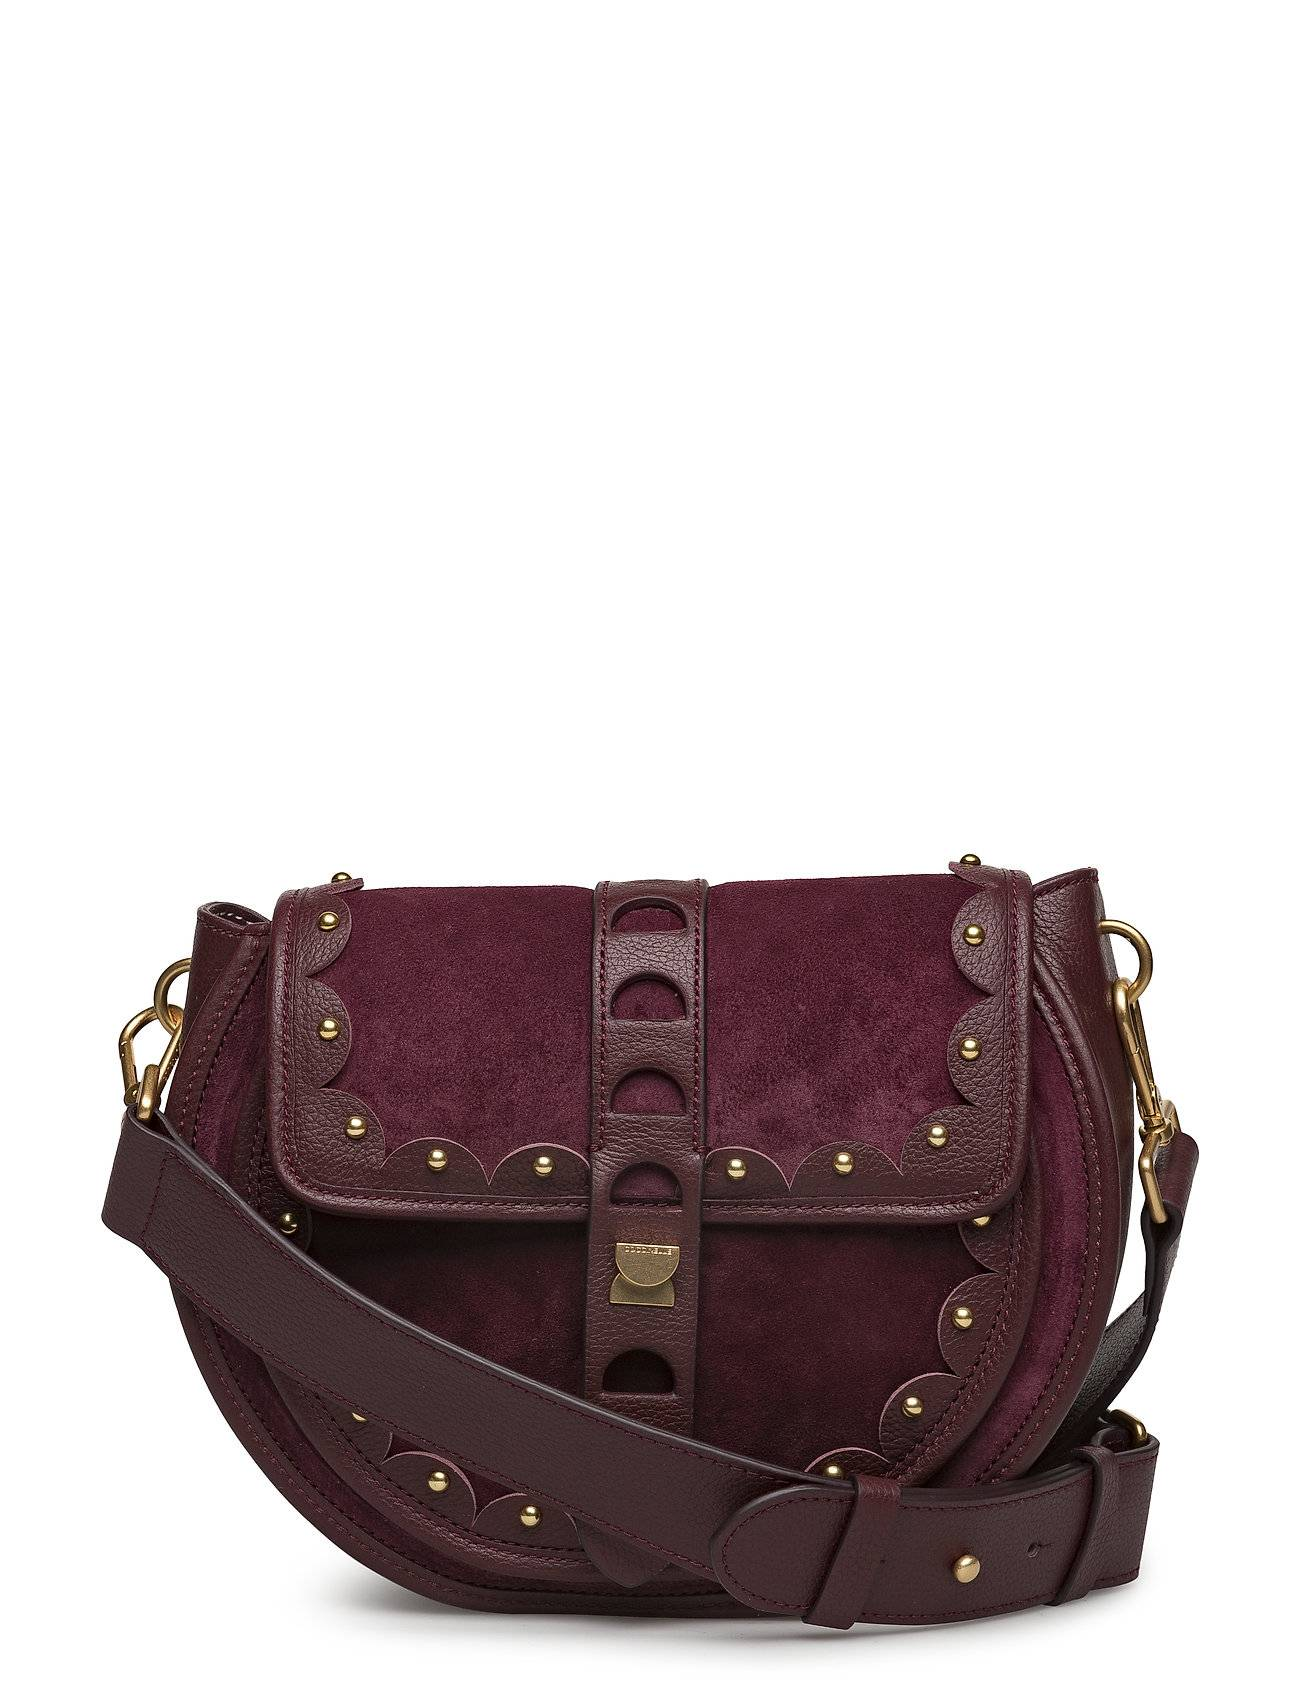 Coccinelle Carousel Suede